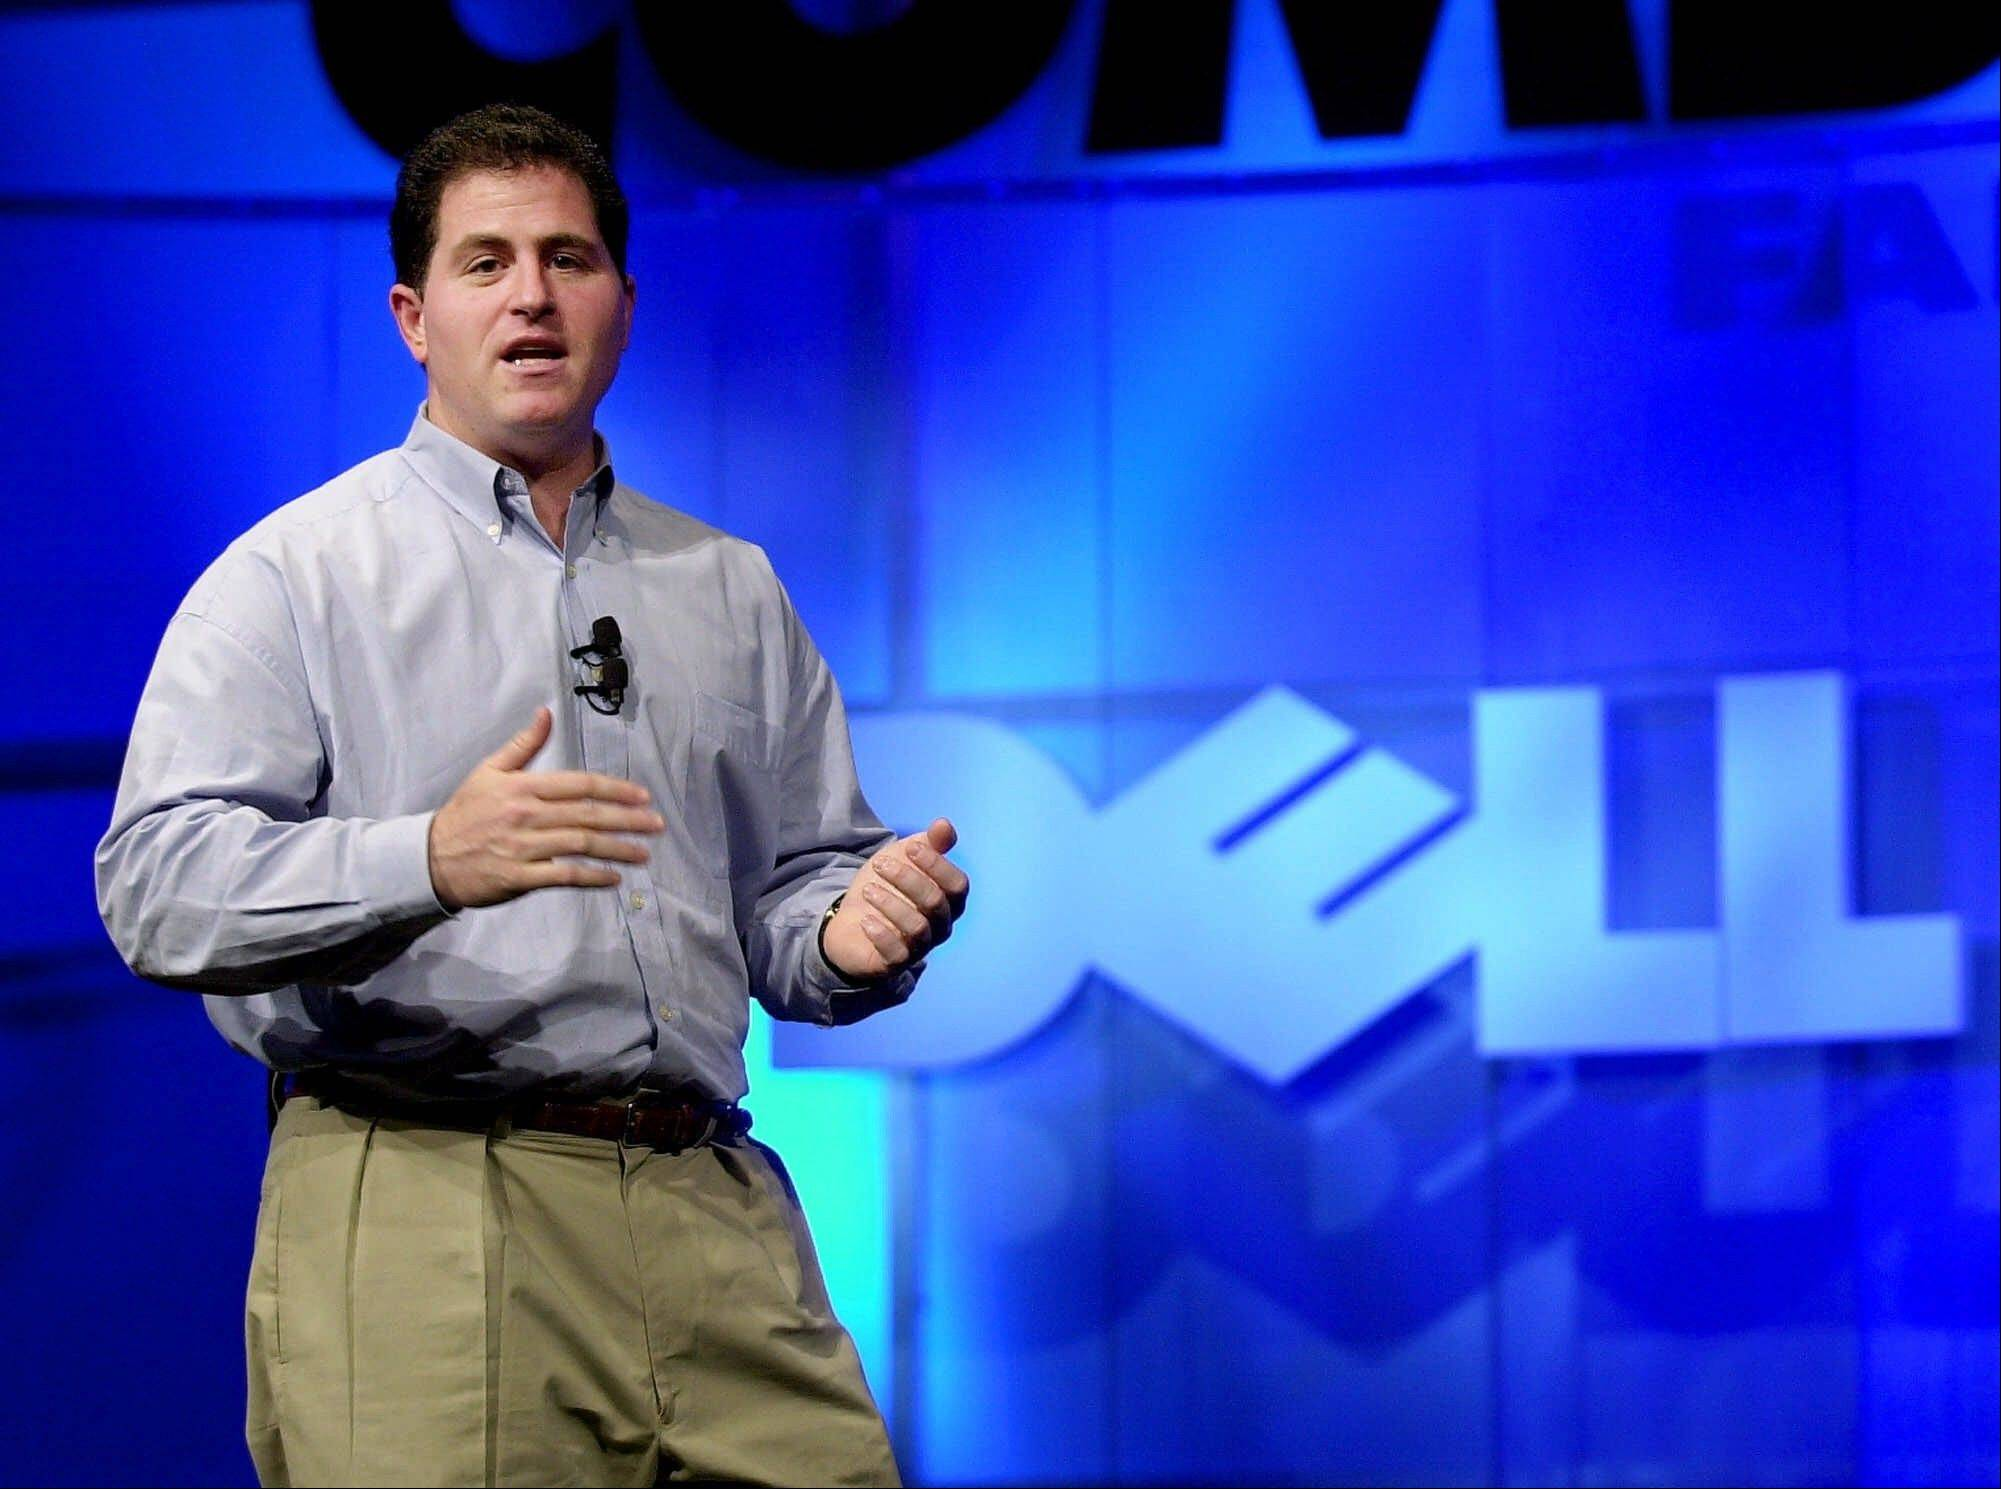 Michael Dell, Chairman and CEO of Dell, speaks during his keynote address at Comdex, in Las Vegas. It's easy to forget now, but Michael Dell was the Mark Zuckerberg of his time. Hailed as a young genius, he created the inexpensive, made-to-order personal computer in his dorm room and peddled it to the masses, but now the PC is being eclipsed by smartphones and tablet computers, and Dell is trying to save his company.